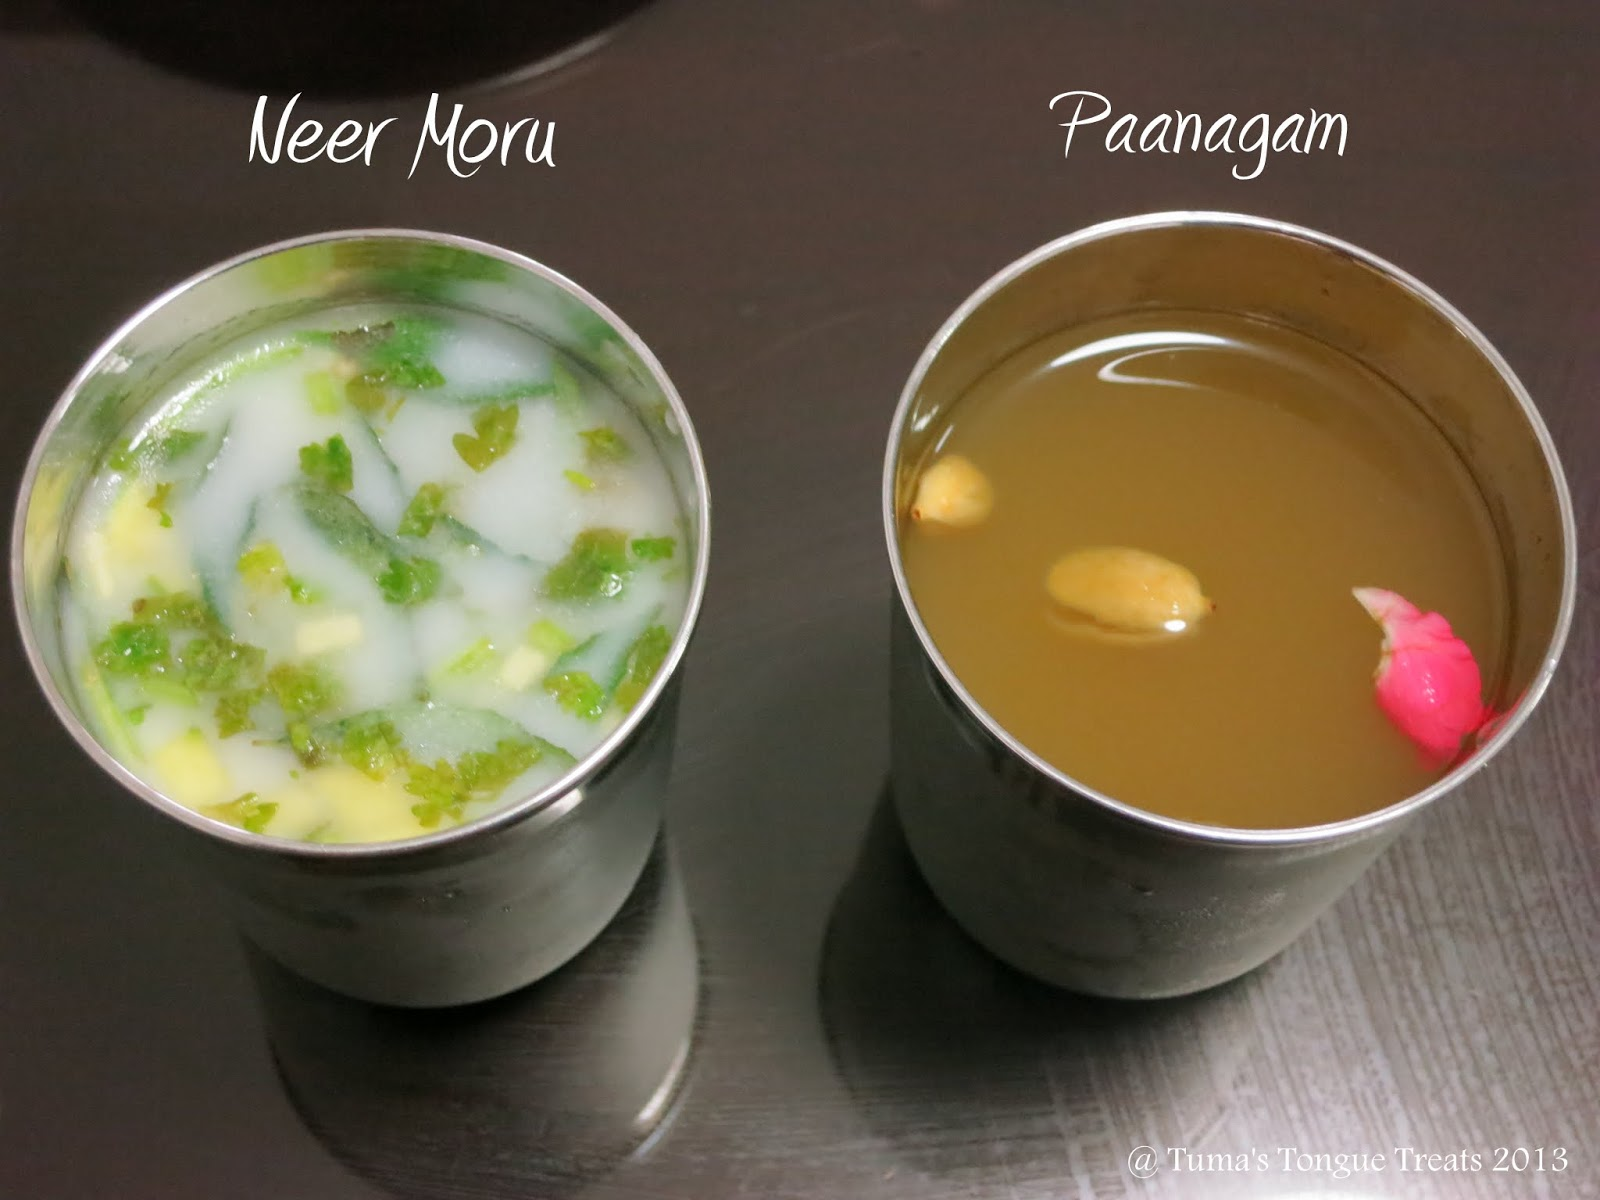 Neer Moru and Panagam